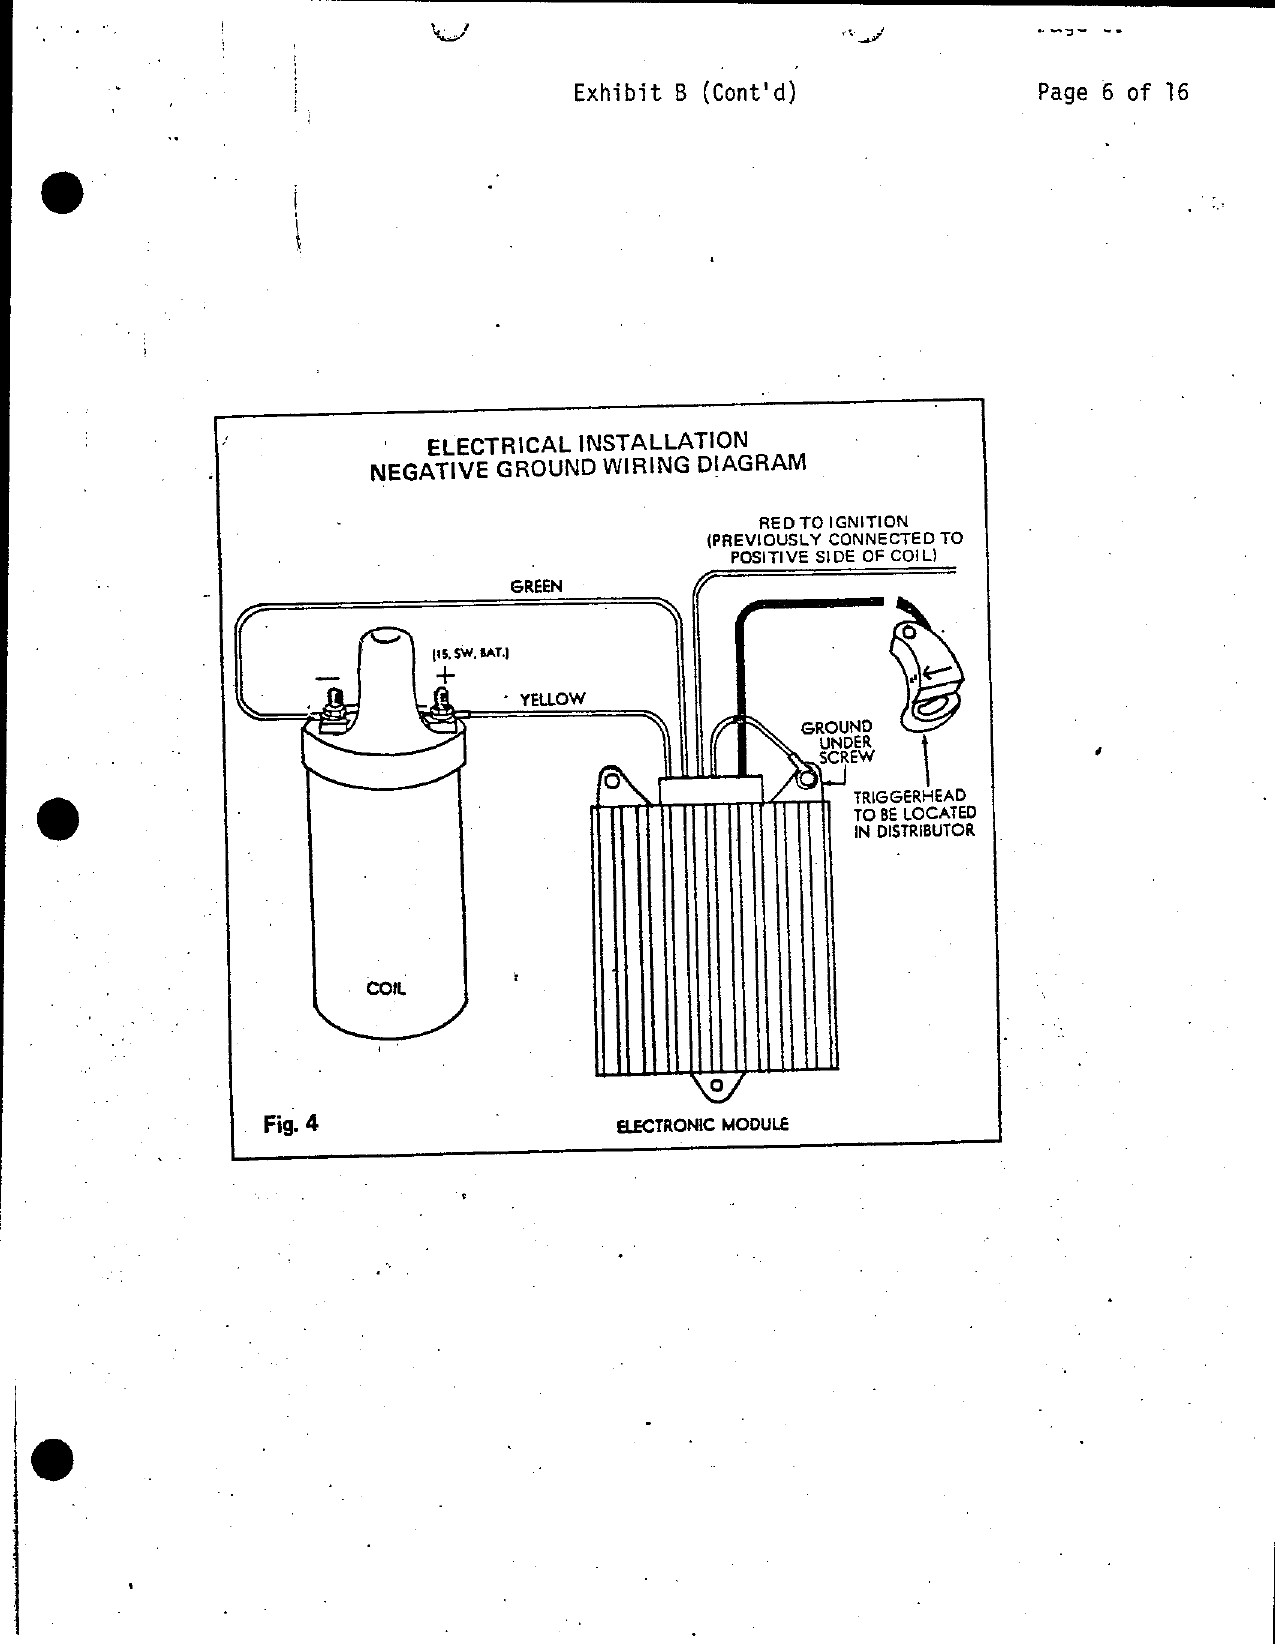 16 hbc hydronic fan coil unit wiring diagram conventional fire morgan olson wiring diagrams at reclaimingppi.co